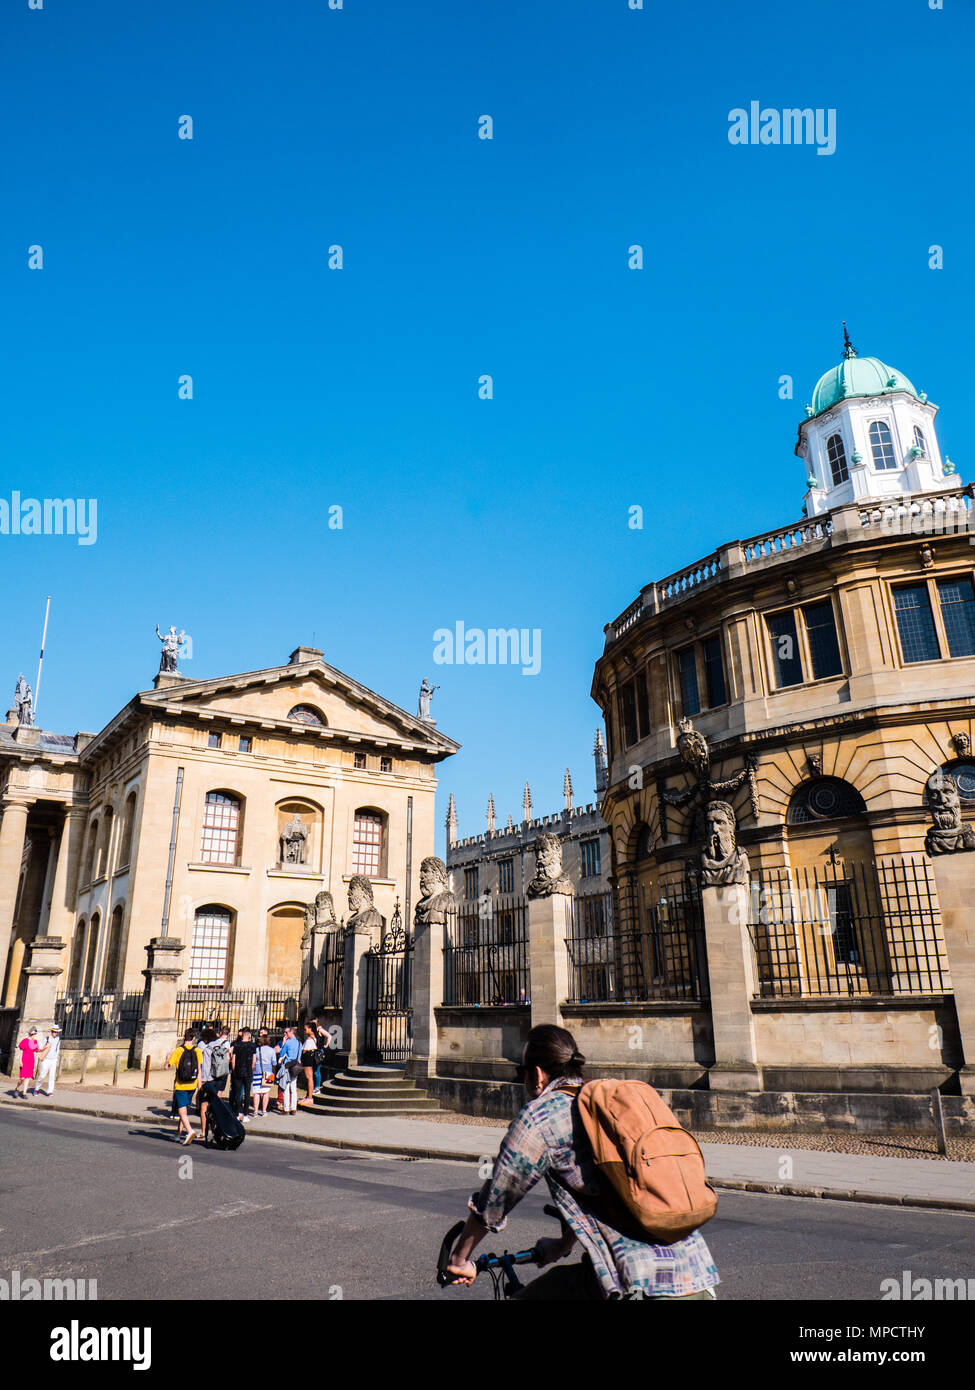 Tourists outside, Clarendon Building, and The Sheldonian Theatre, University of Oxford, Oxfordshire, UK, England, UK, GB. - Stock Image